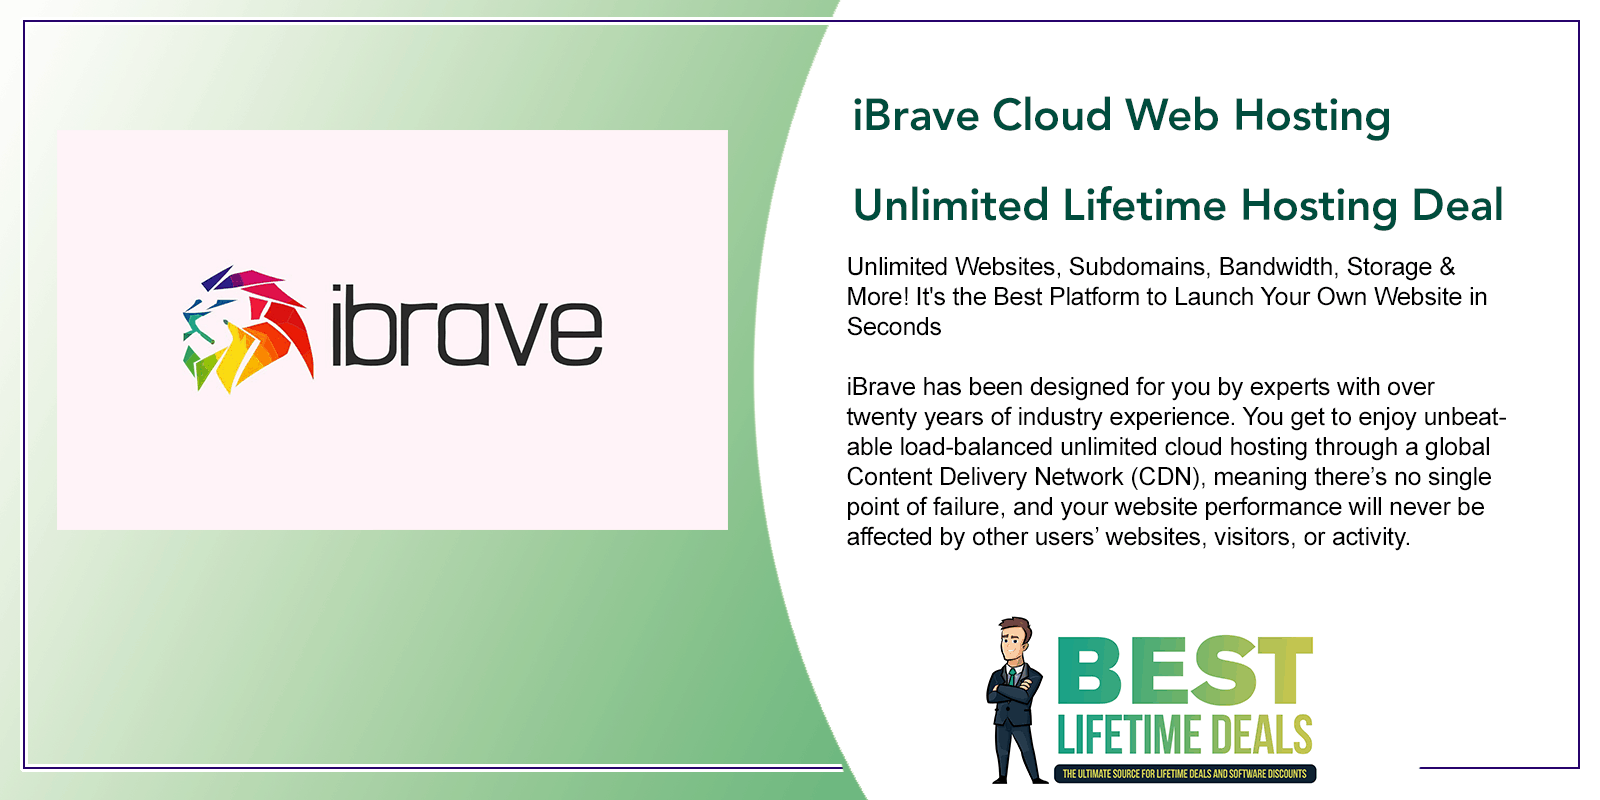 iBrave Cloud Web Hosting Featured Image